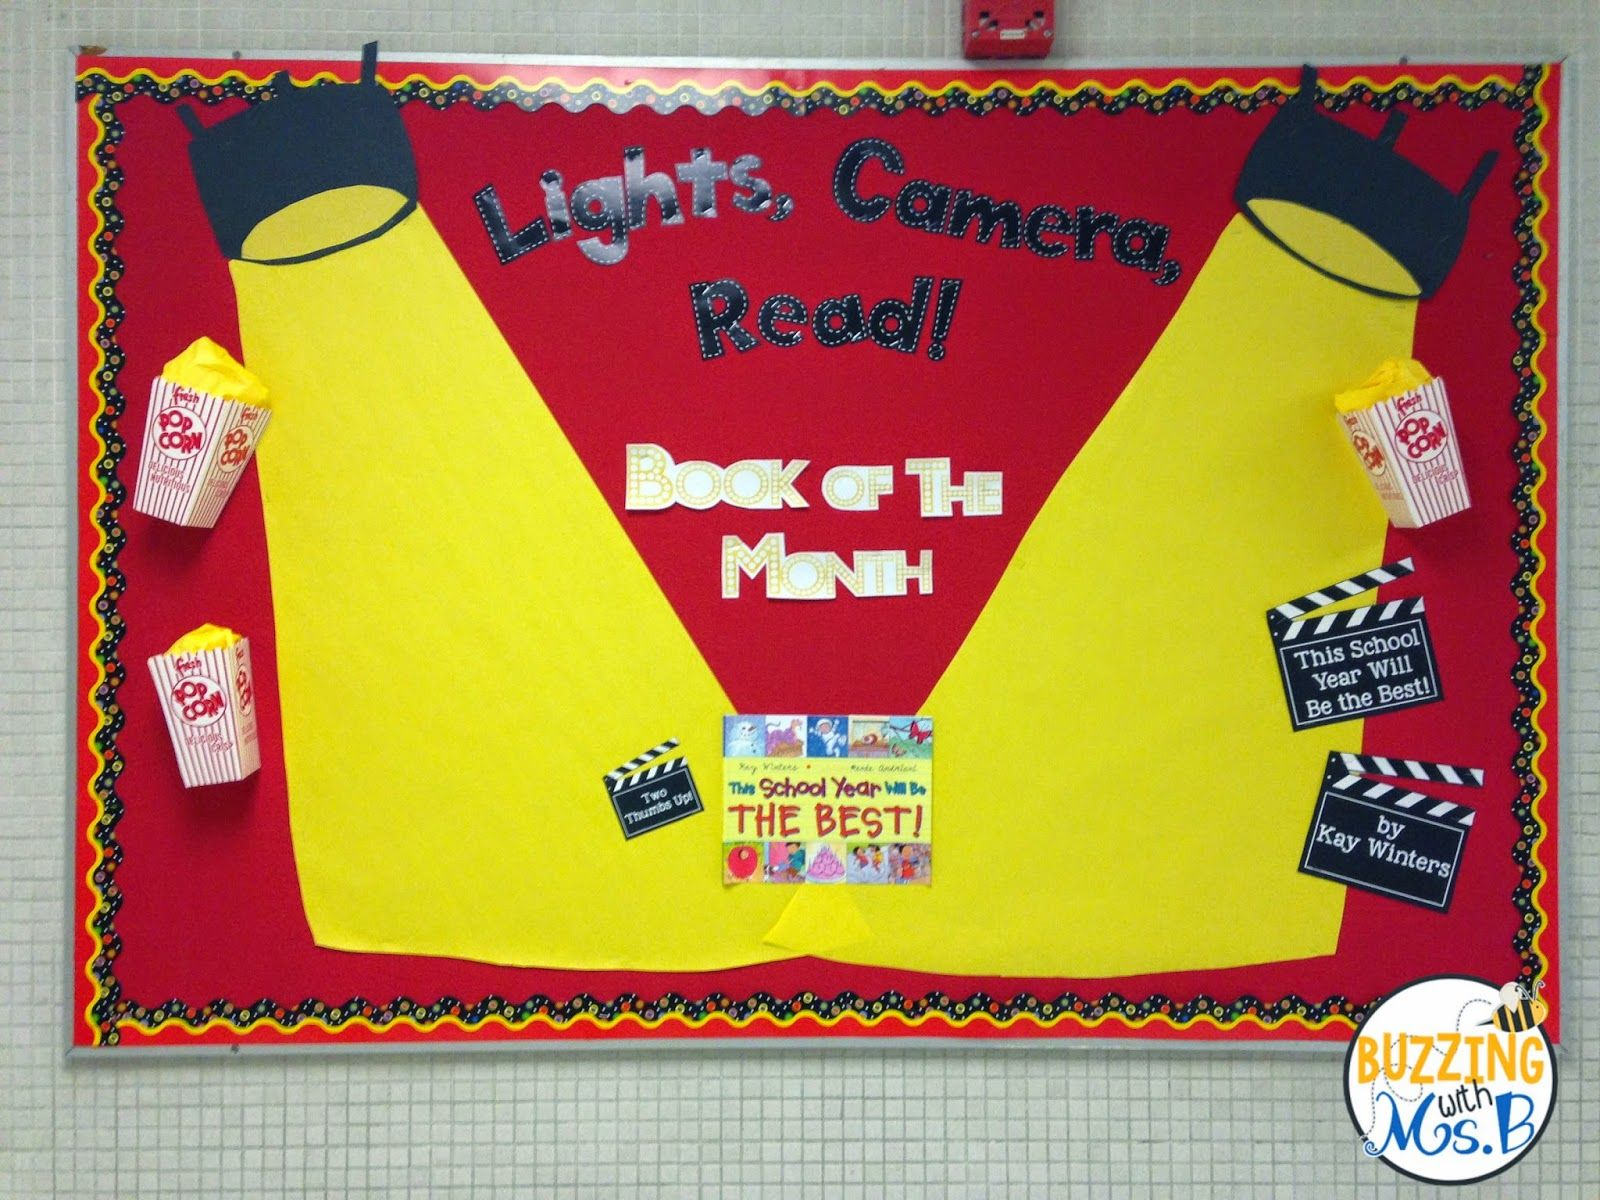 Bulletin board ideas for the month of july - Lights Camera Read Bulletin Board For Book Of The Month